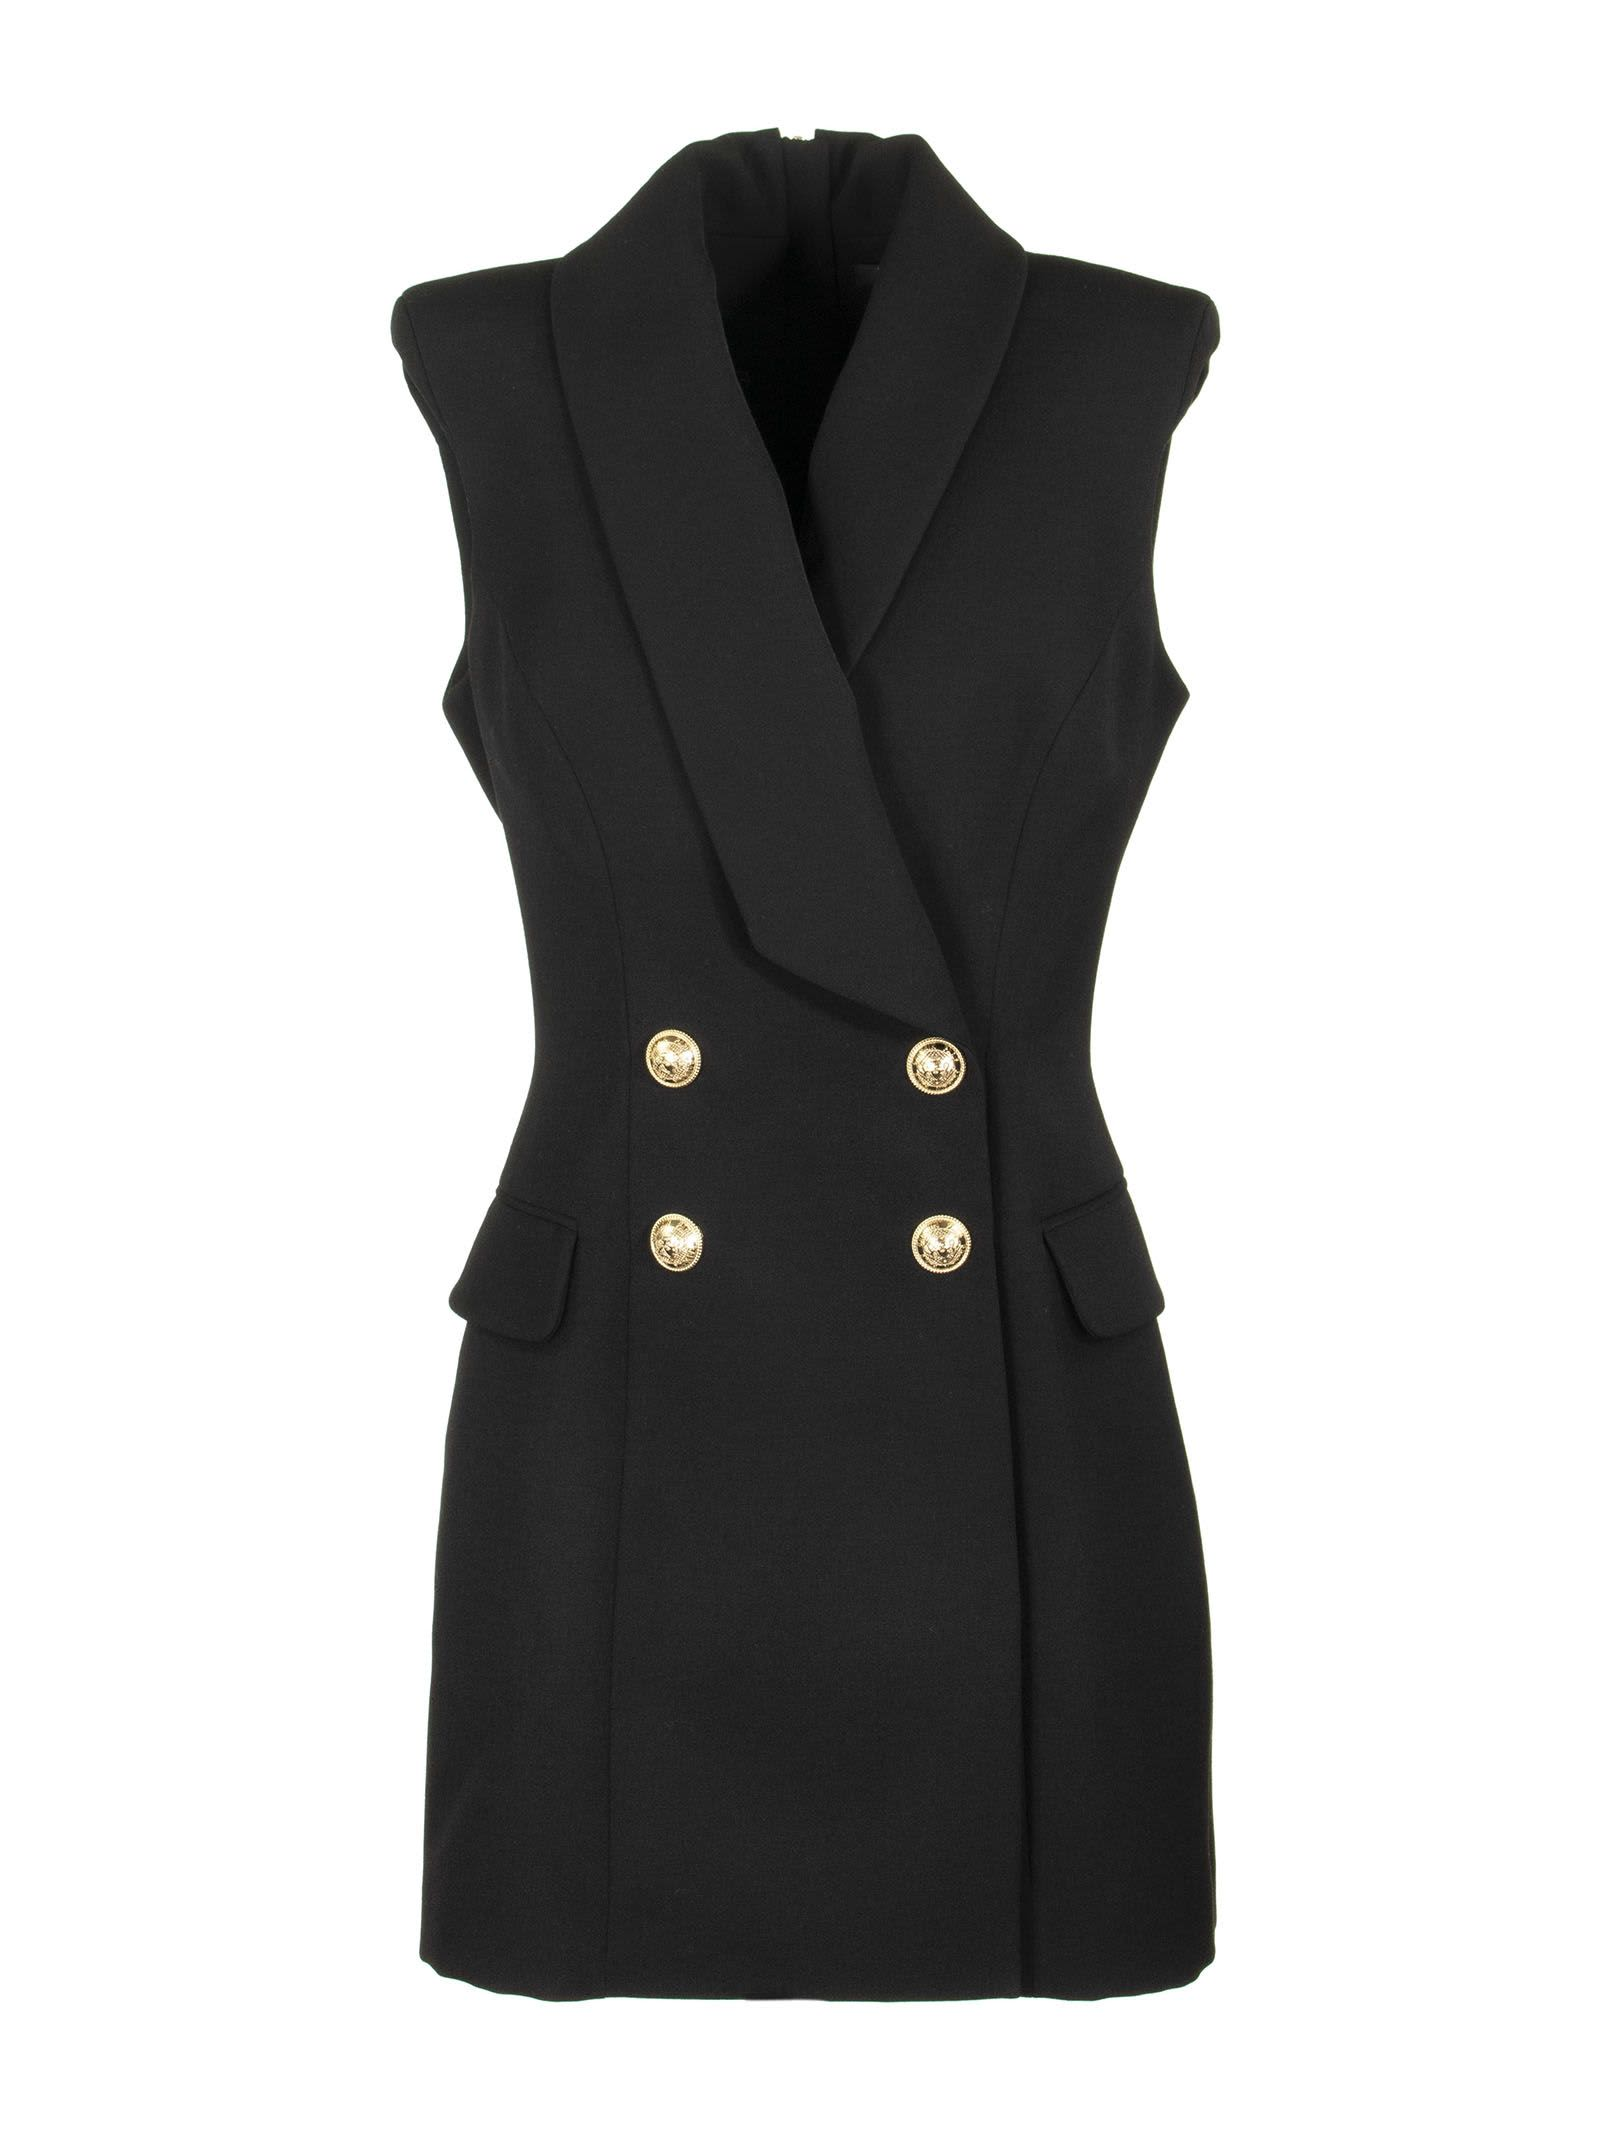 Buy Balmain Double-breasted Sleeveless Dress Black online, shop Balmain with free shipping